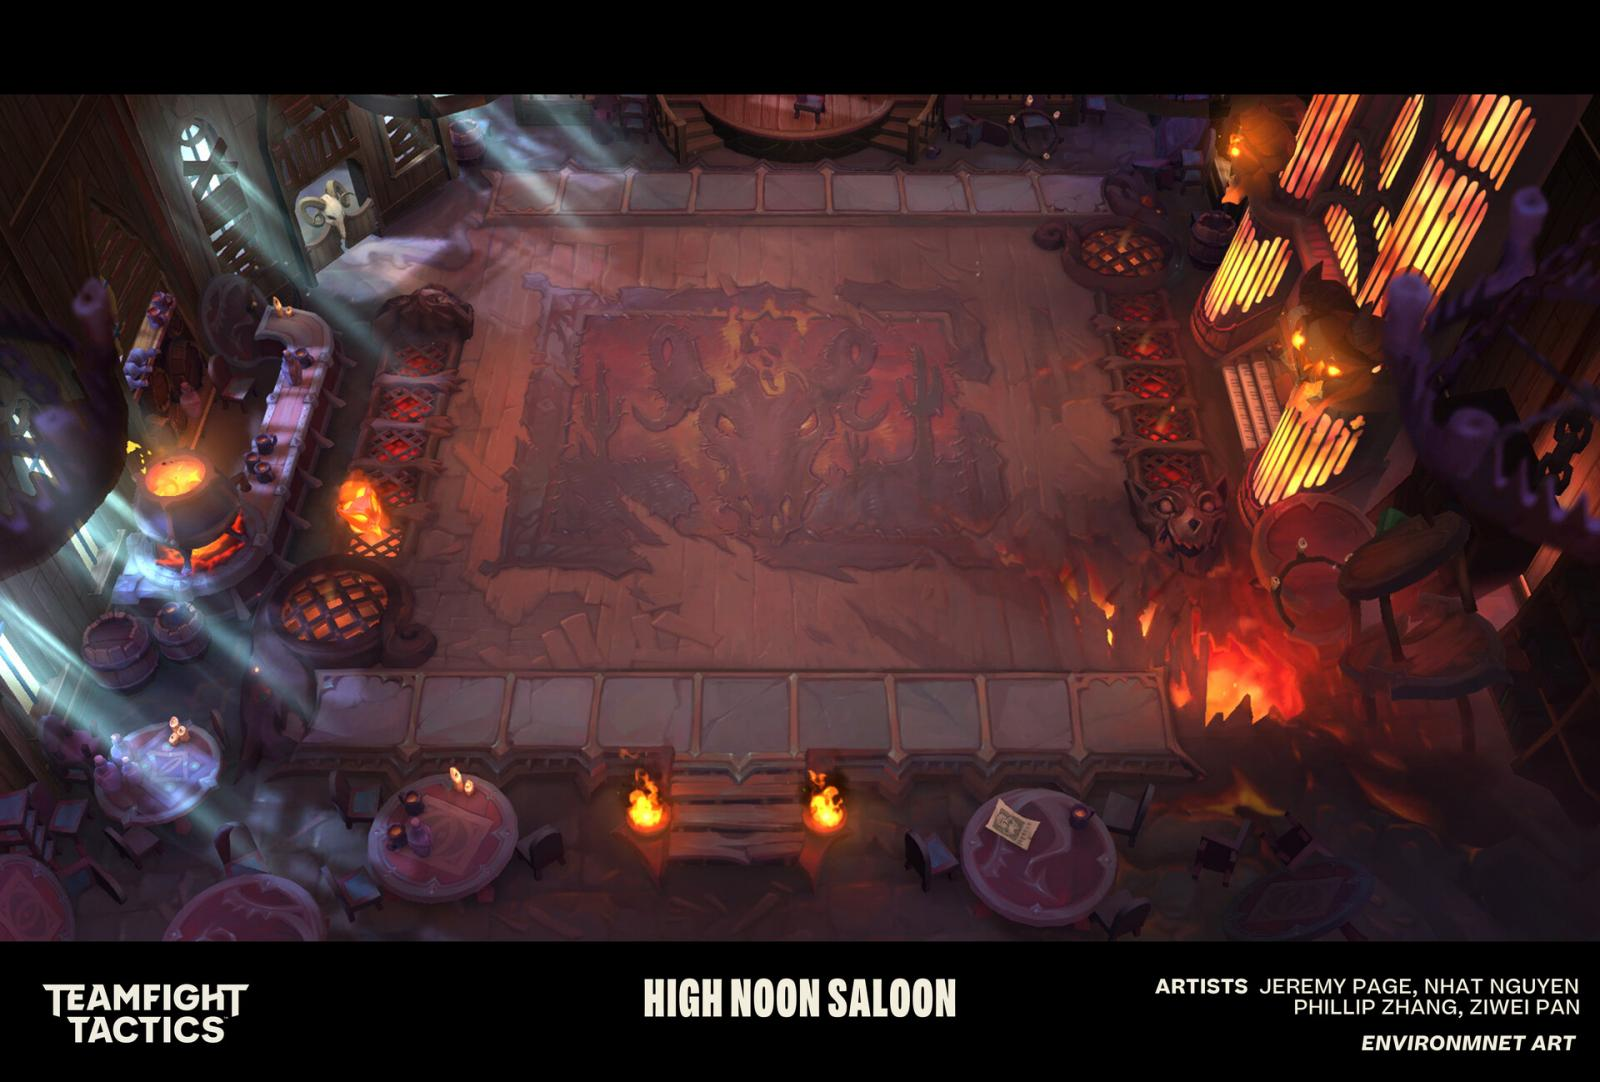 jeremy-page-high-noon-saloon-01